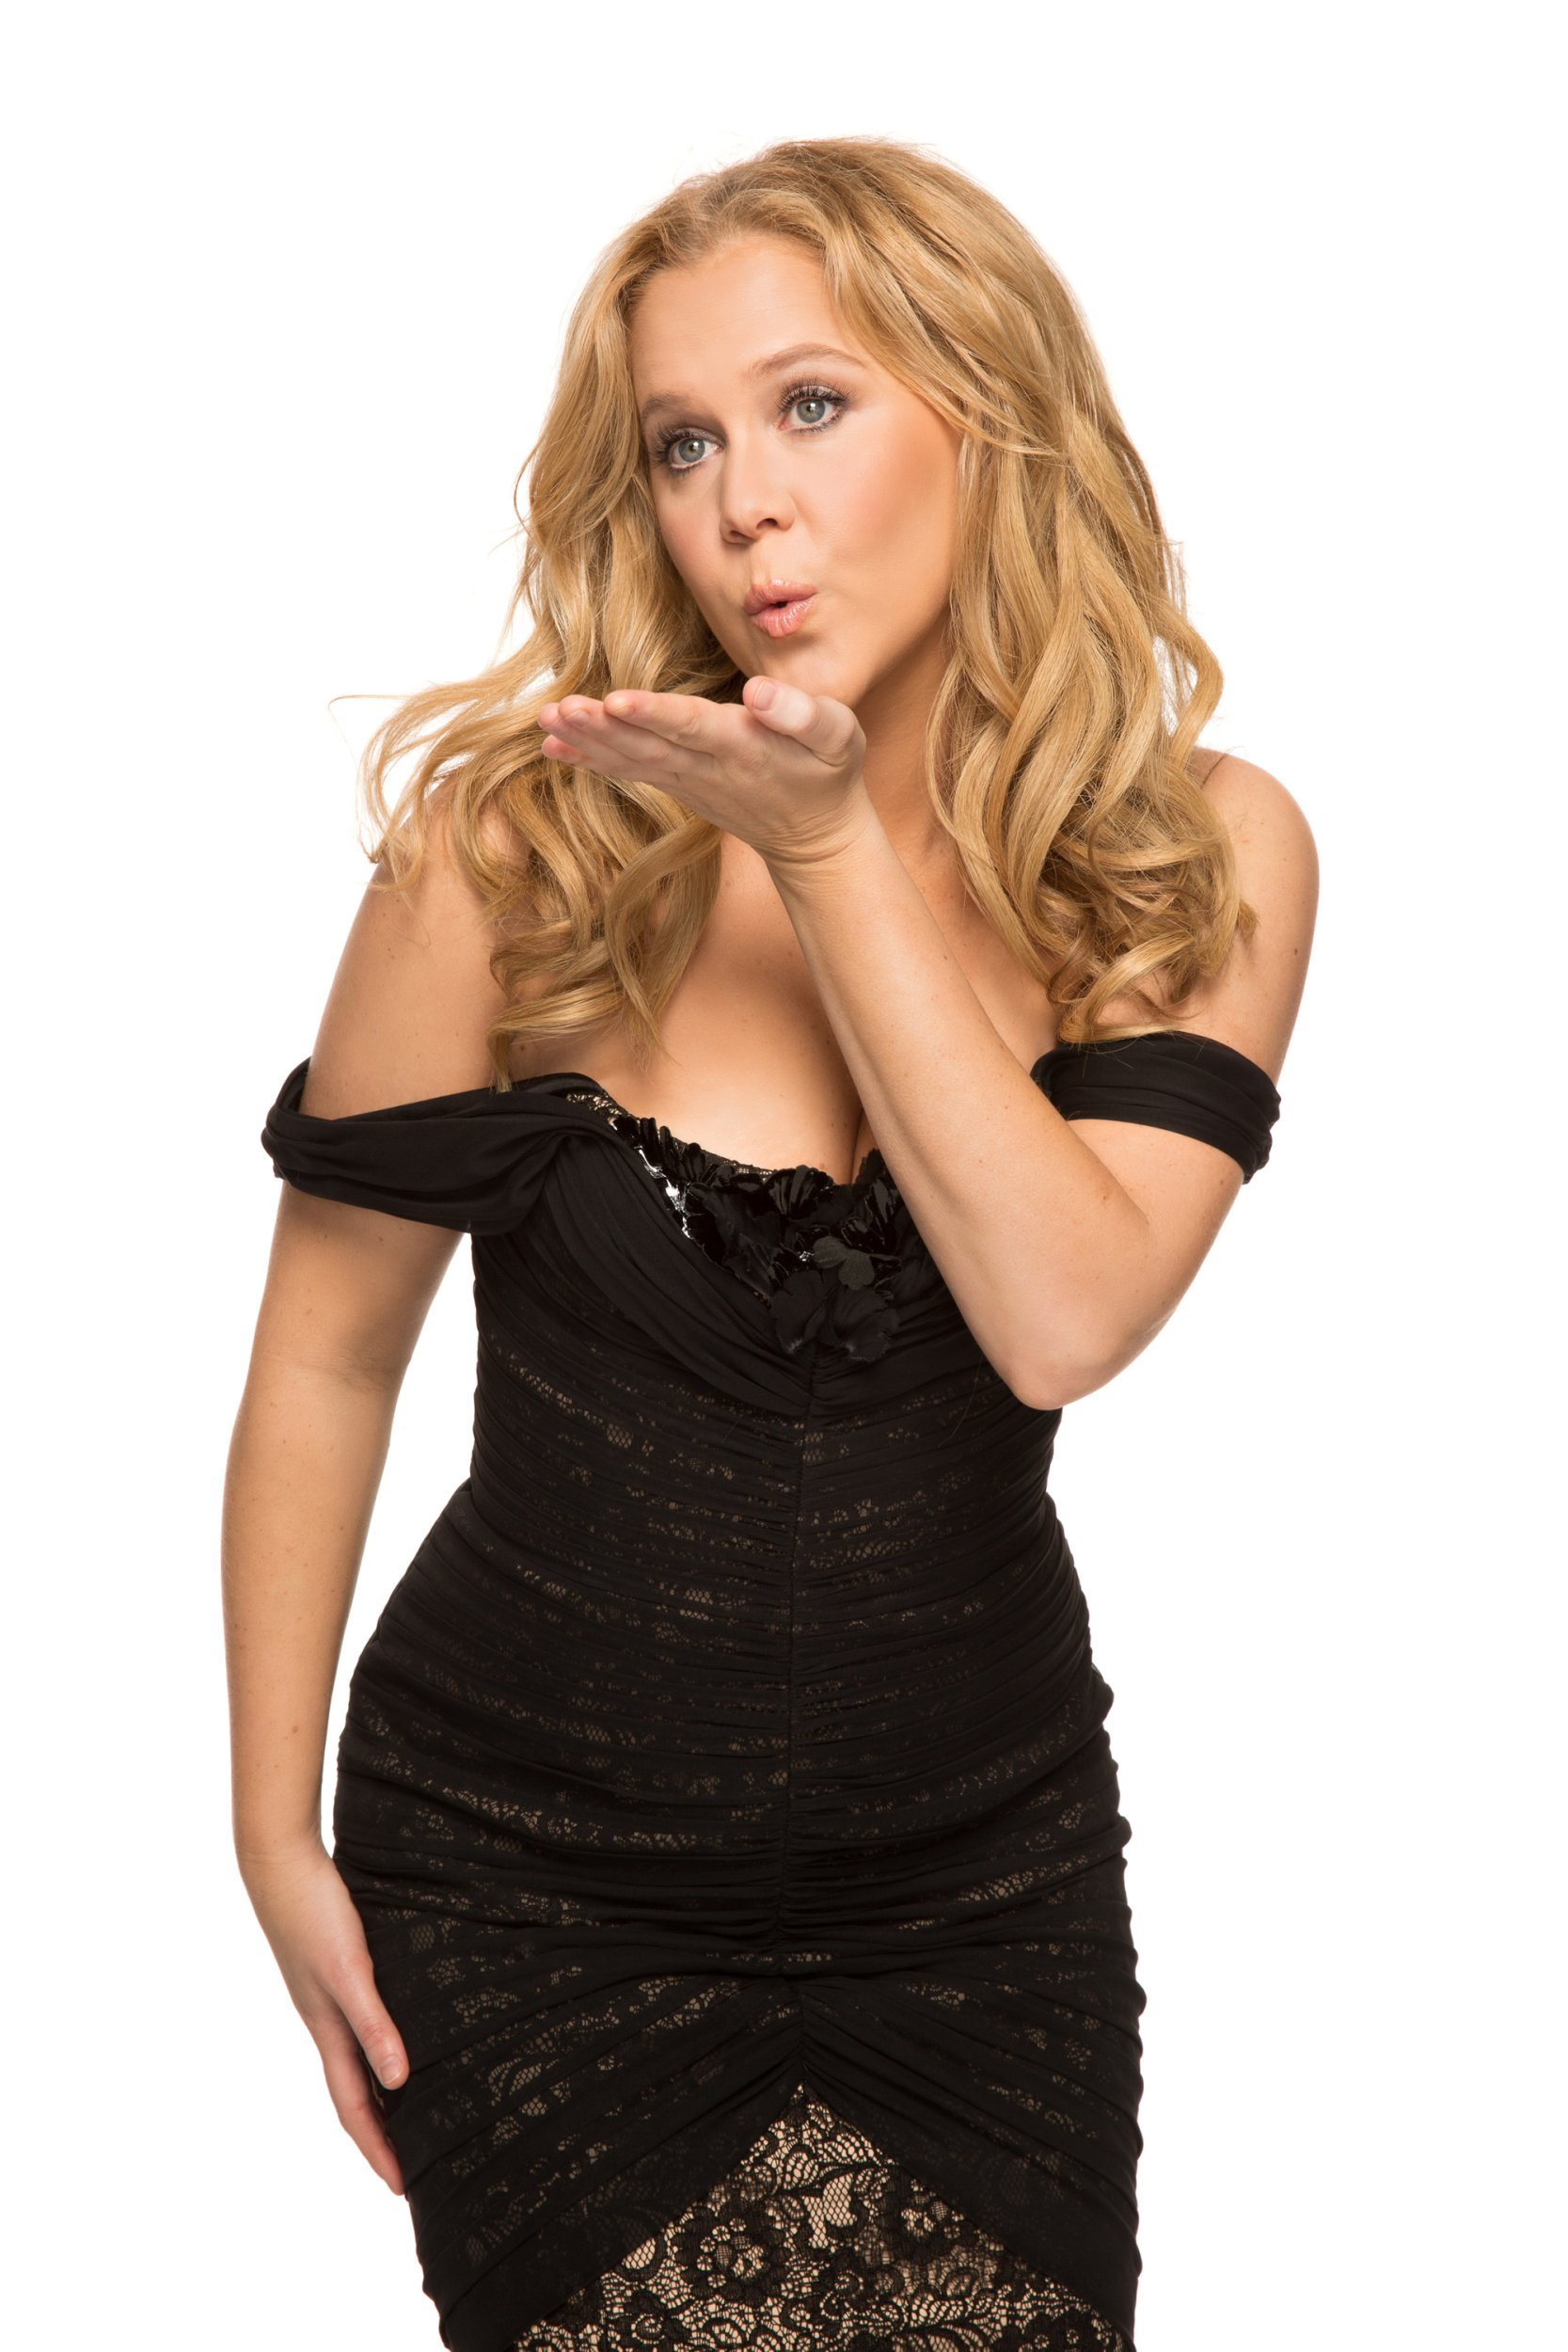 Amy Schumer - Photo Credit Peter Yang